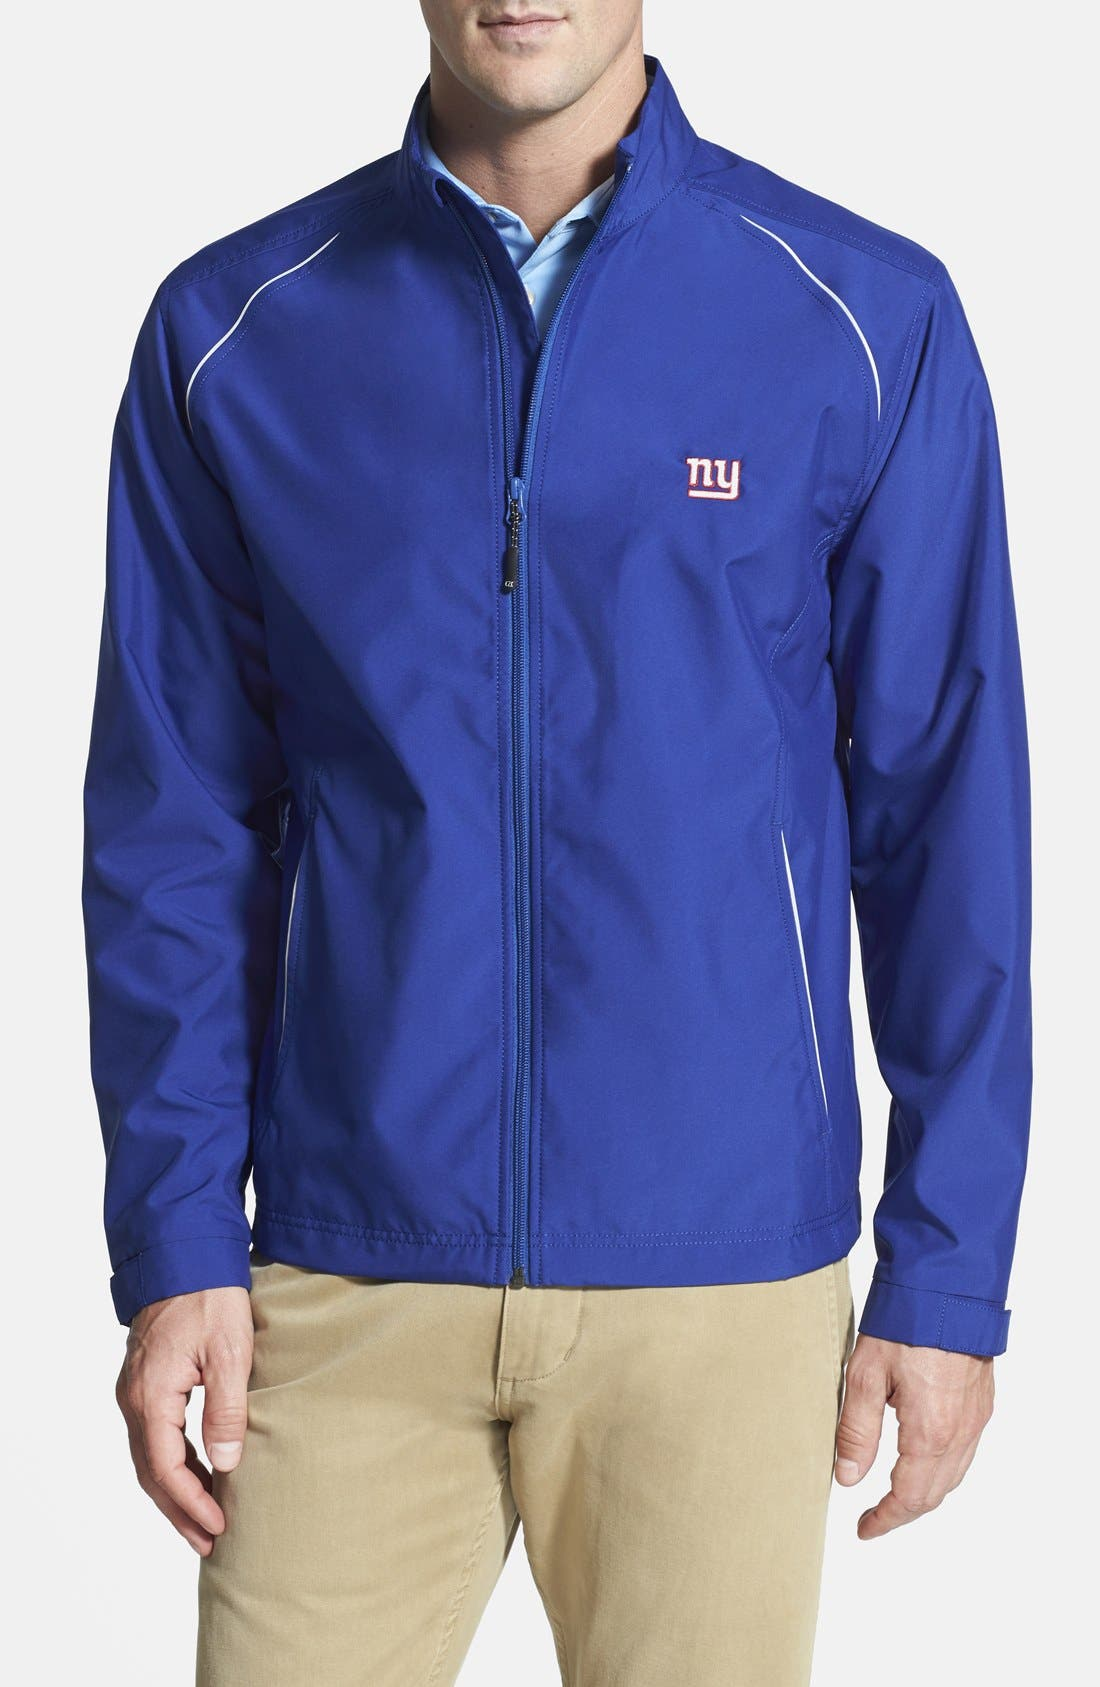 New York Giants - Beacon WeatherTec Wind & Water Resistant Jacket,                             Main thumbnail 1, color,                             462